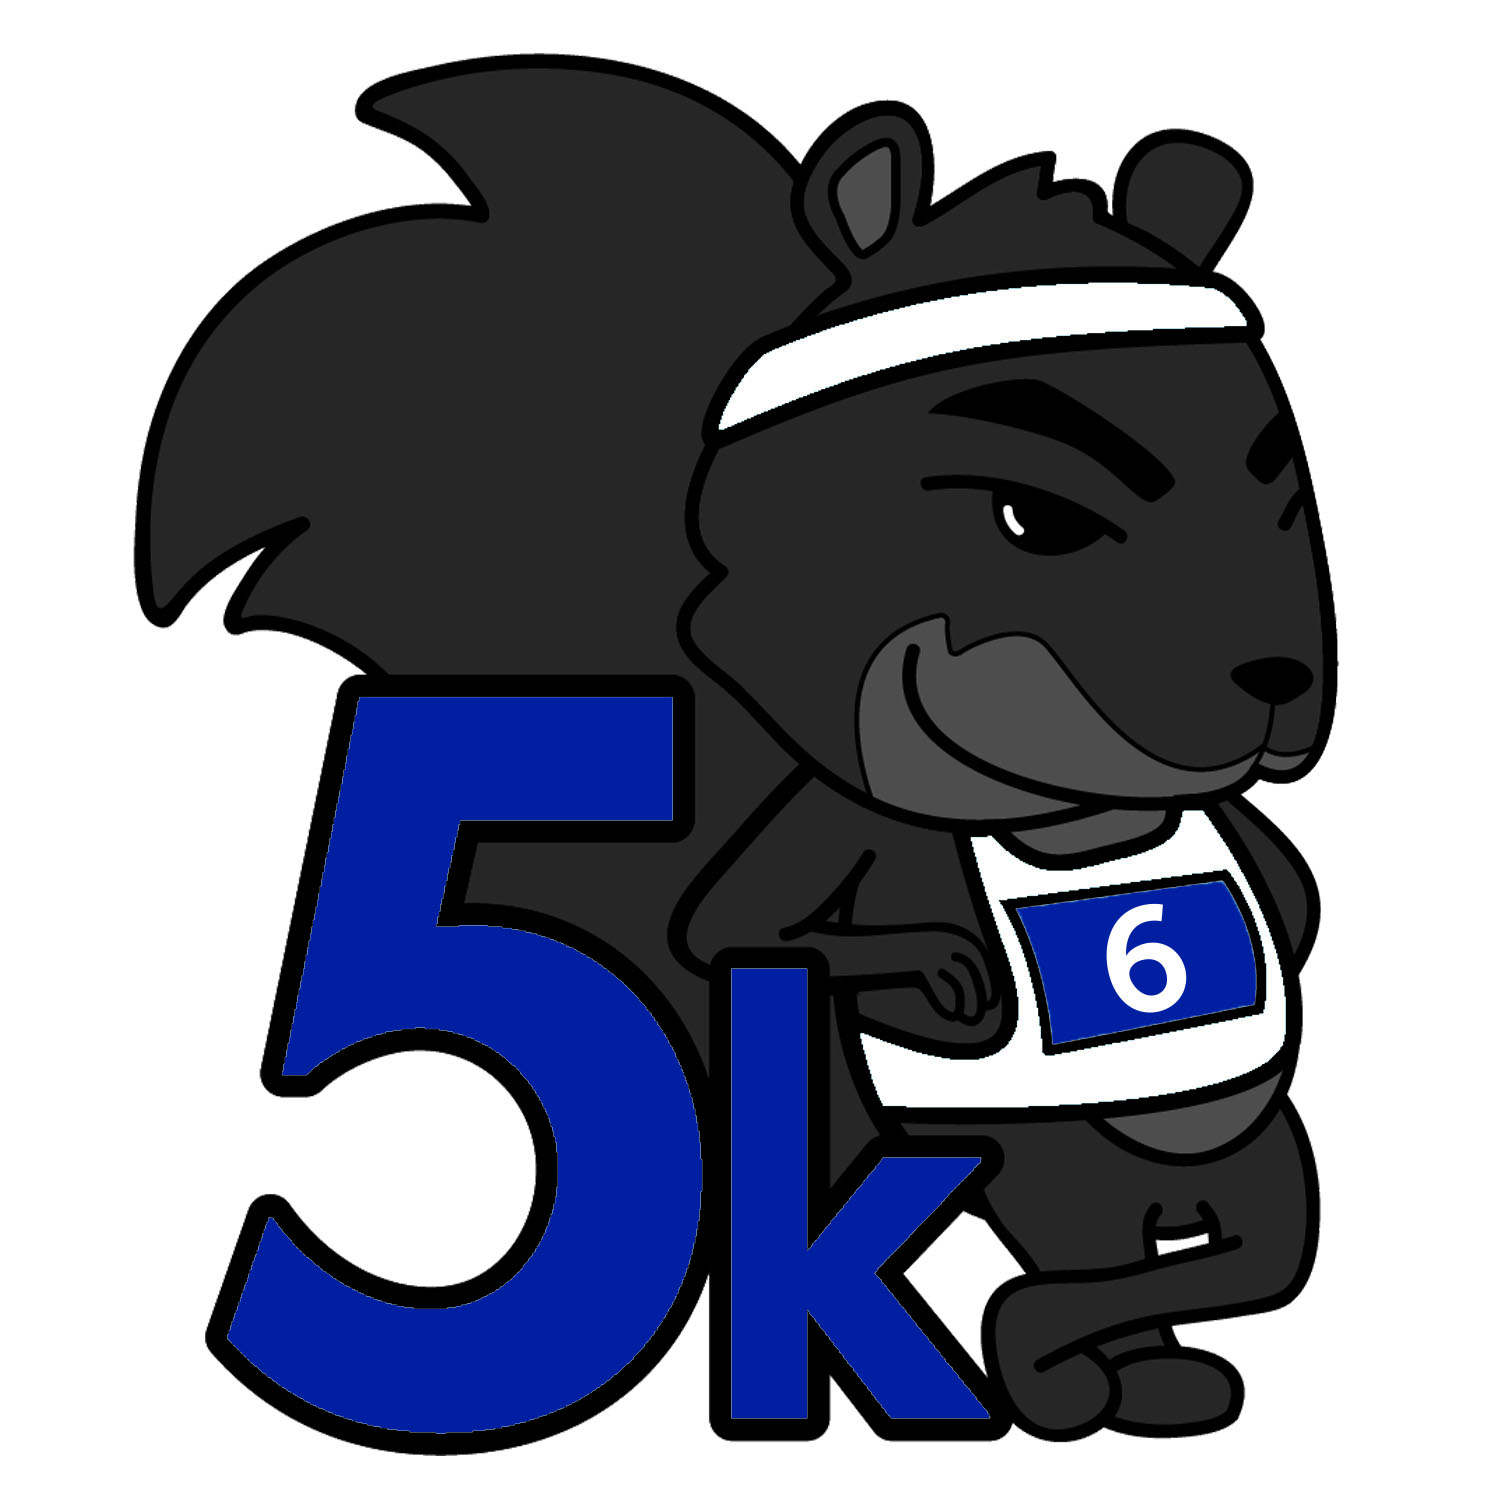 Image result for kent state university 5k race